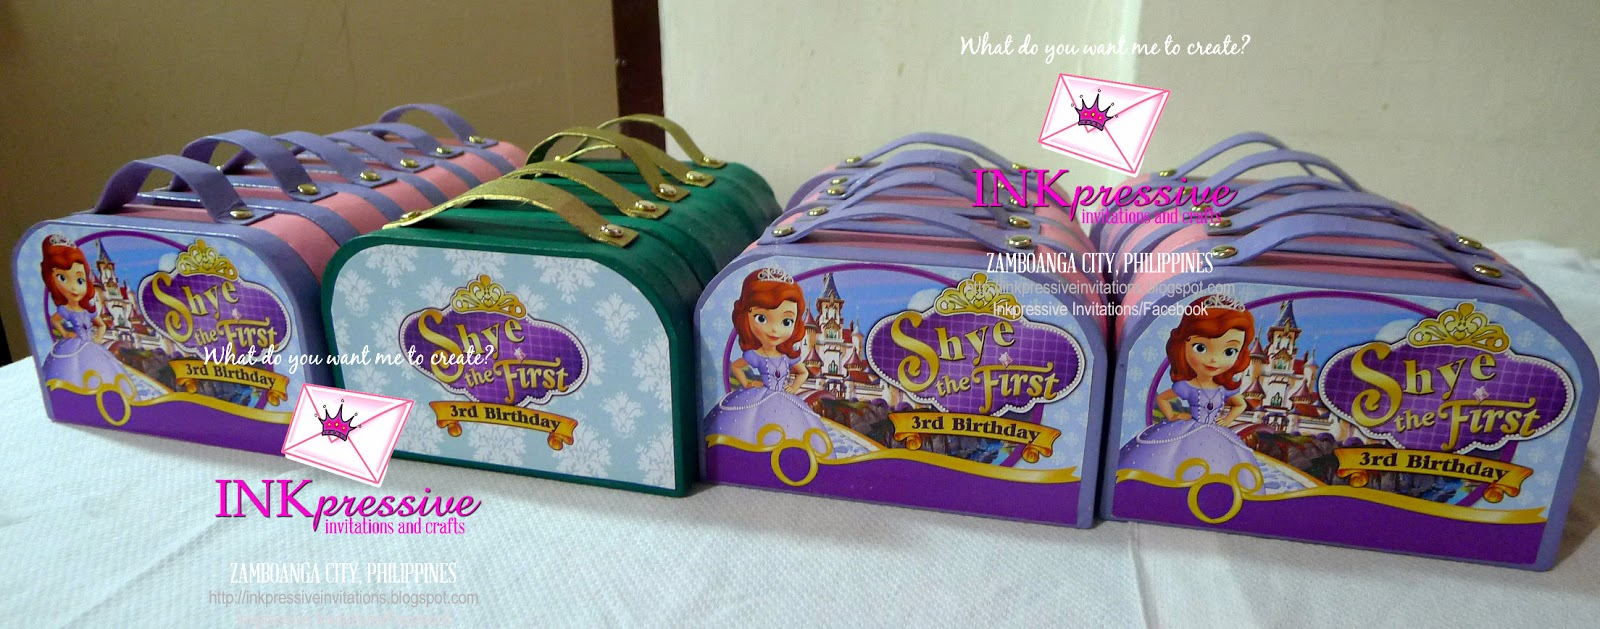 Sofia the first giveaways philippines